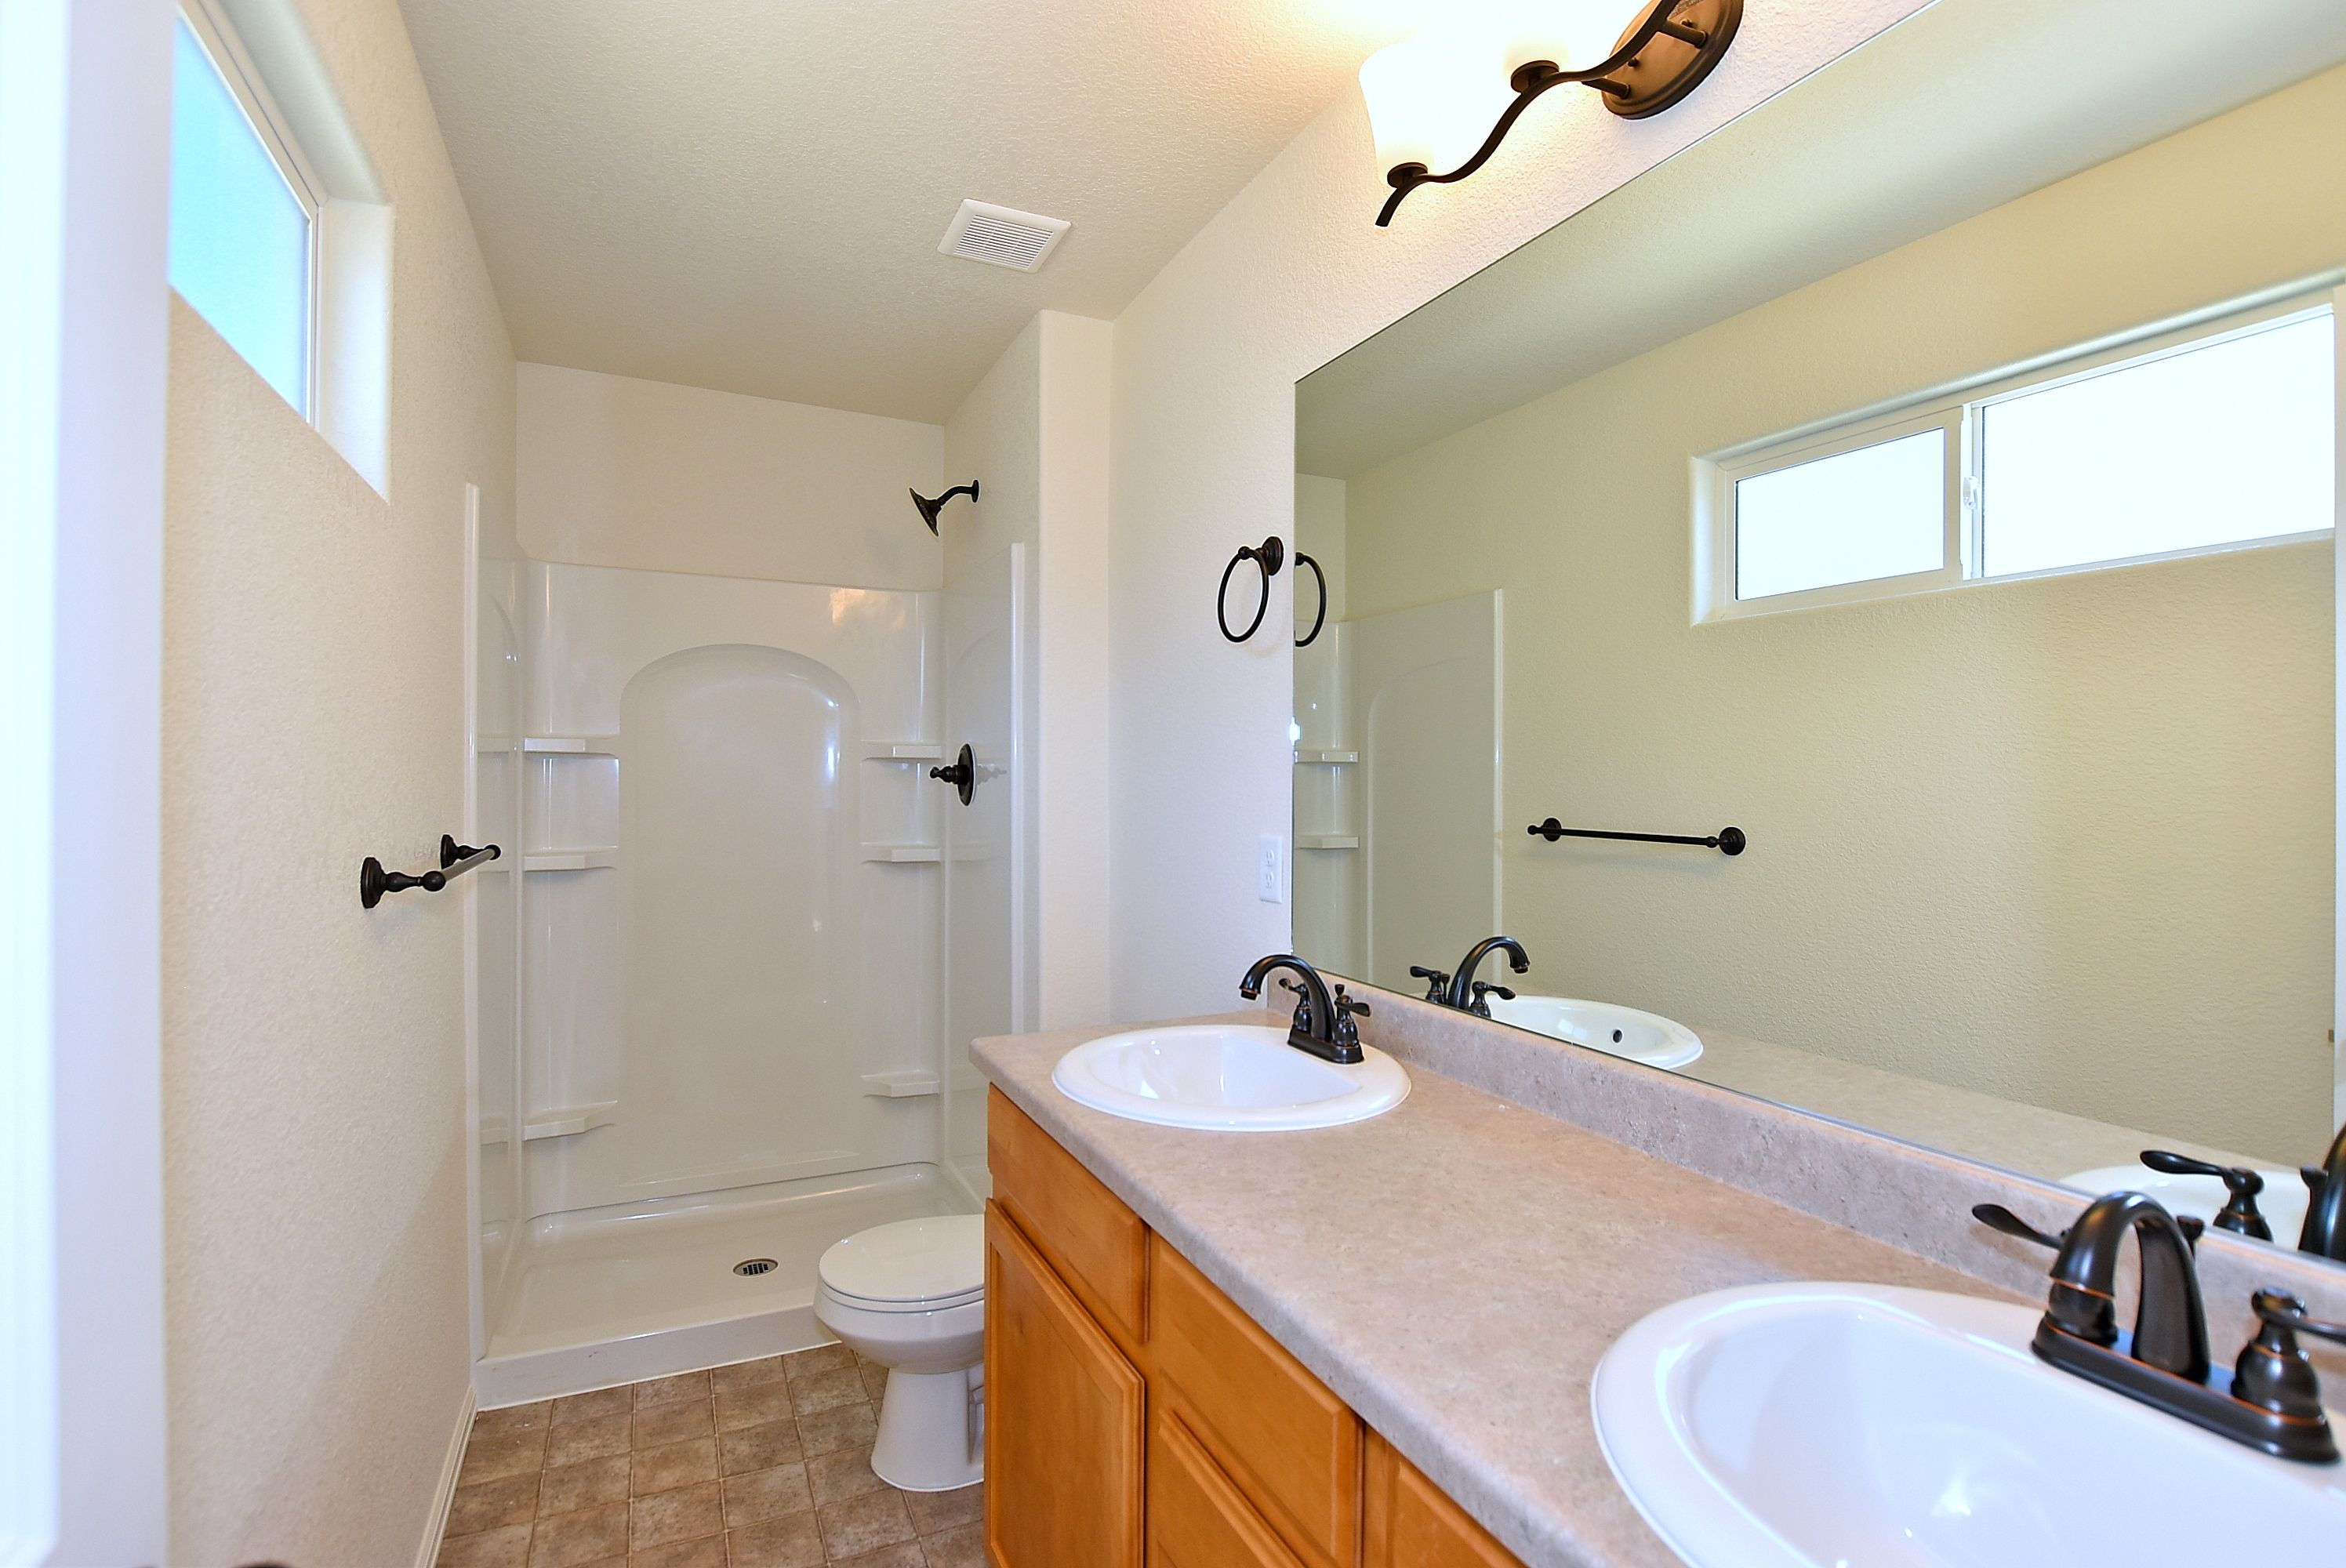 Bathroom featured in the Alaska By Journey Homes in Greeley, CO